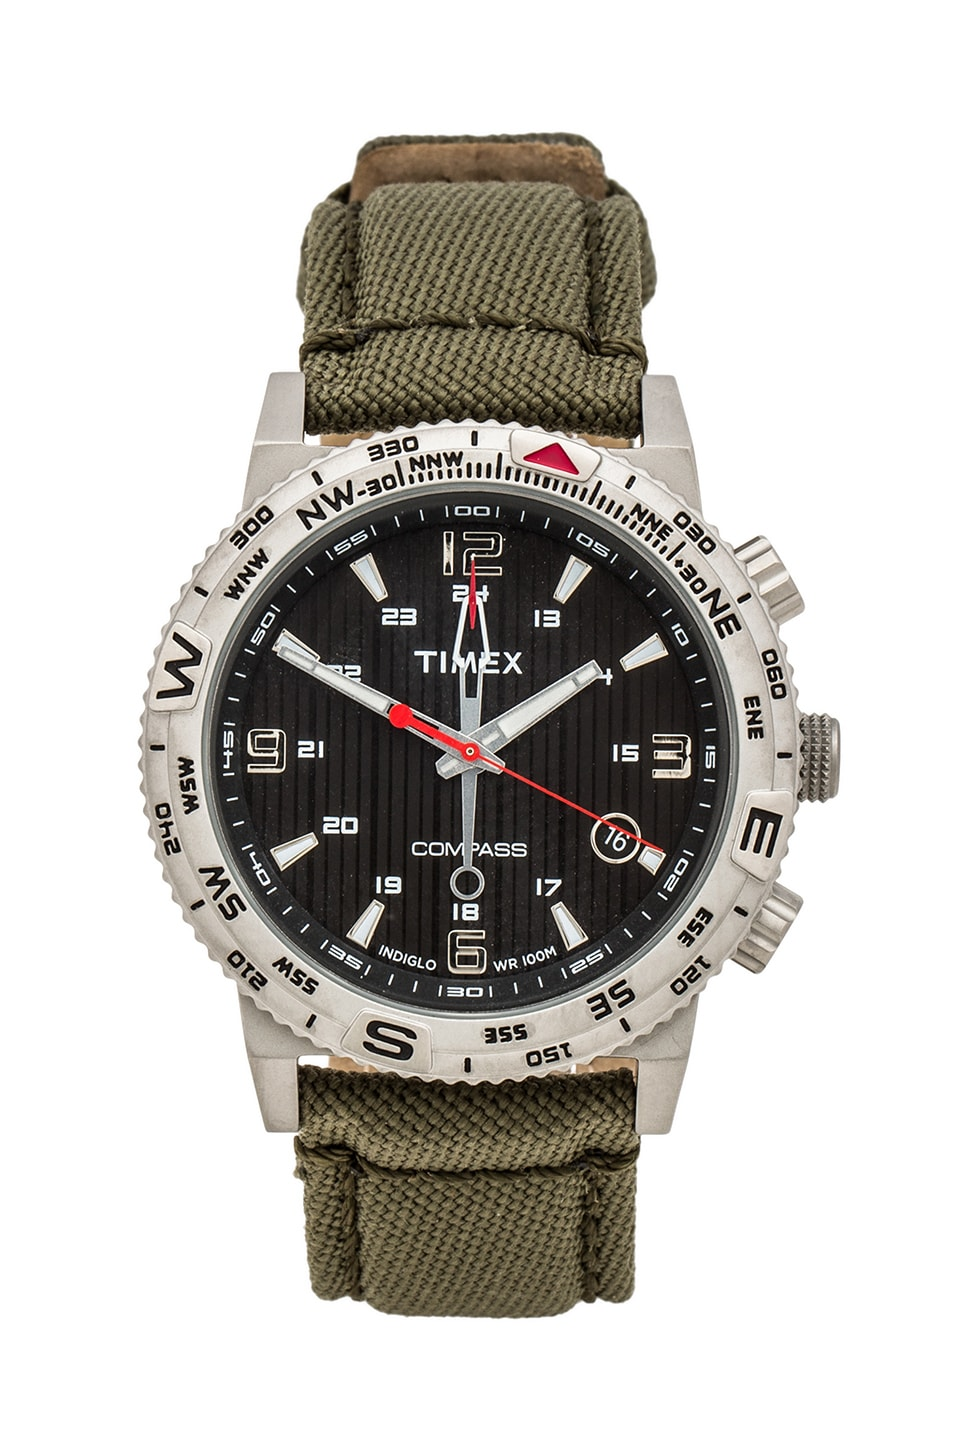 Timex Adventure Series Compass in Black & Red & Green